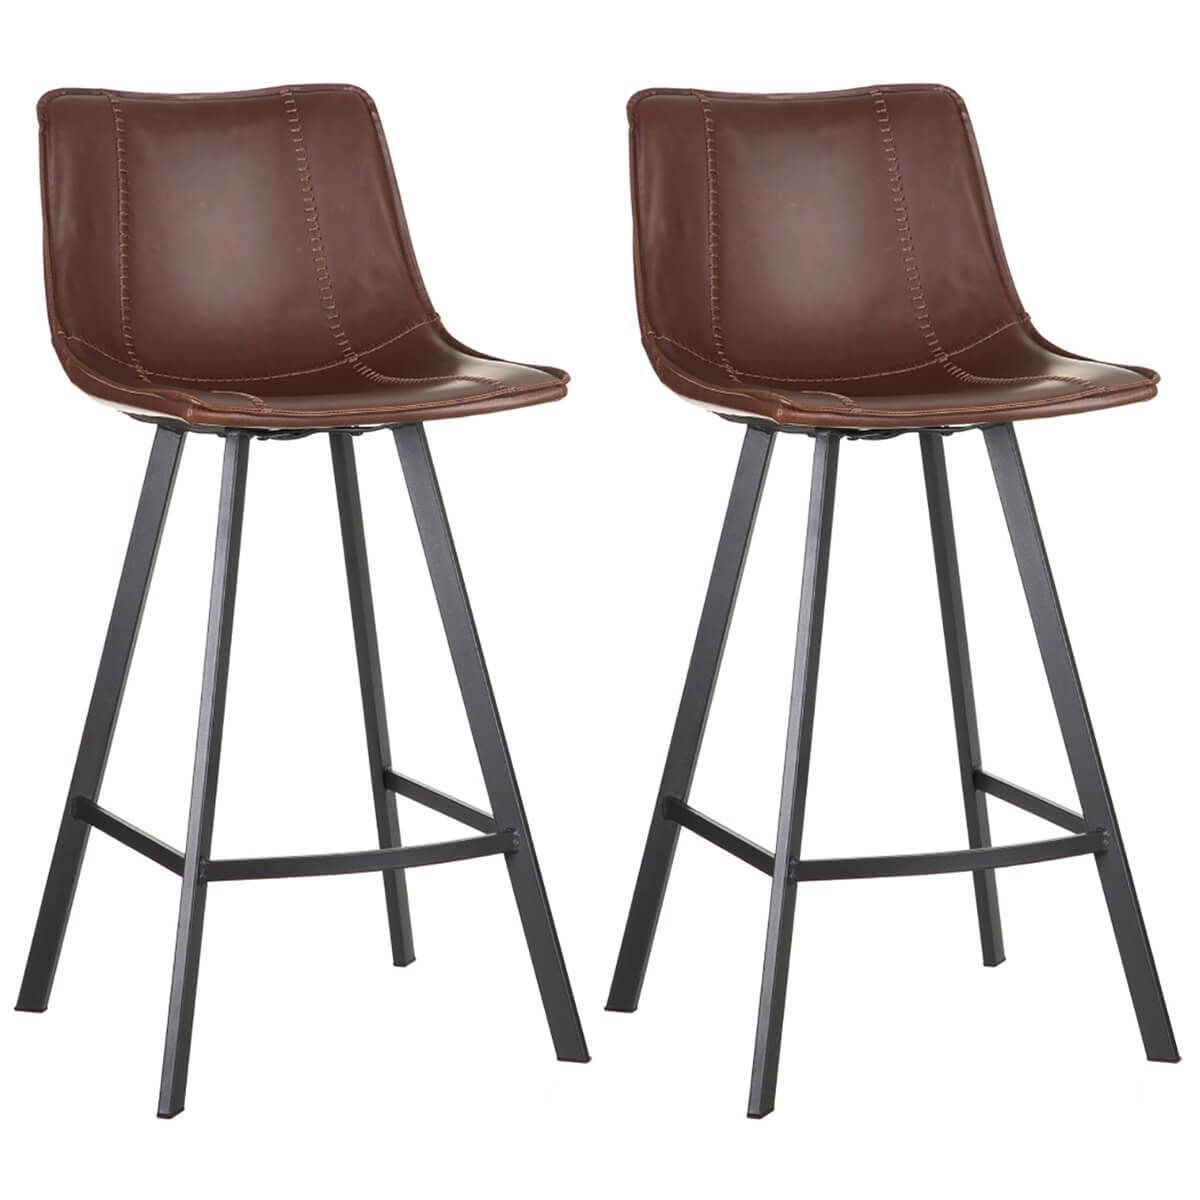 Altobuy Thecia Lot De 2 Tabourets De Bar Simili Marron Neuf Ebay